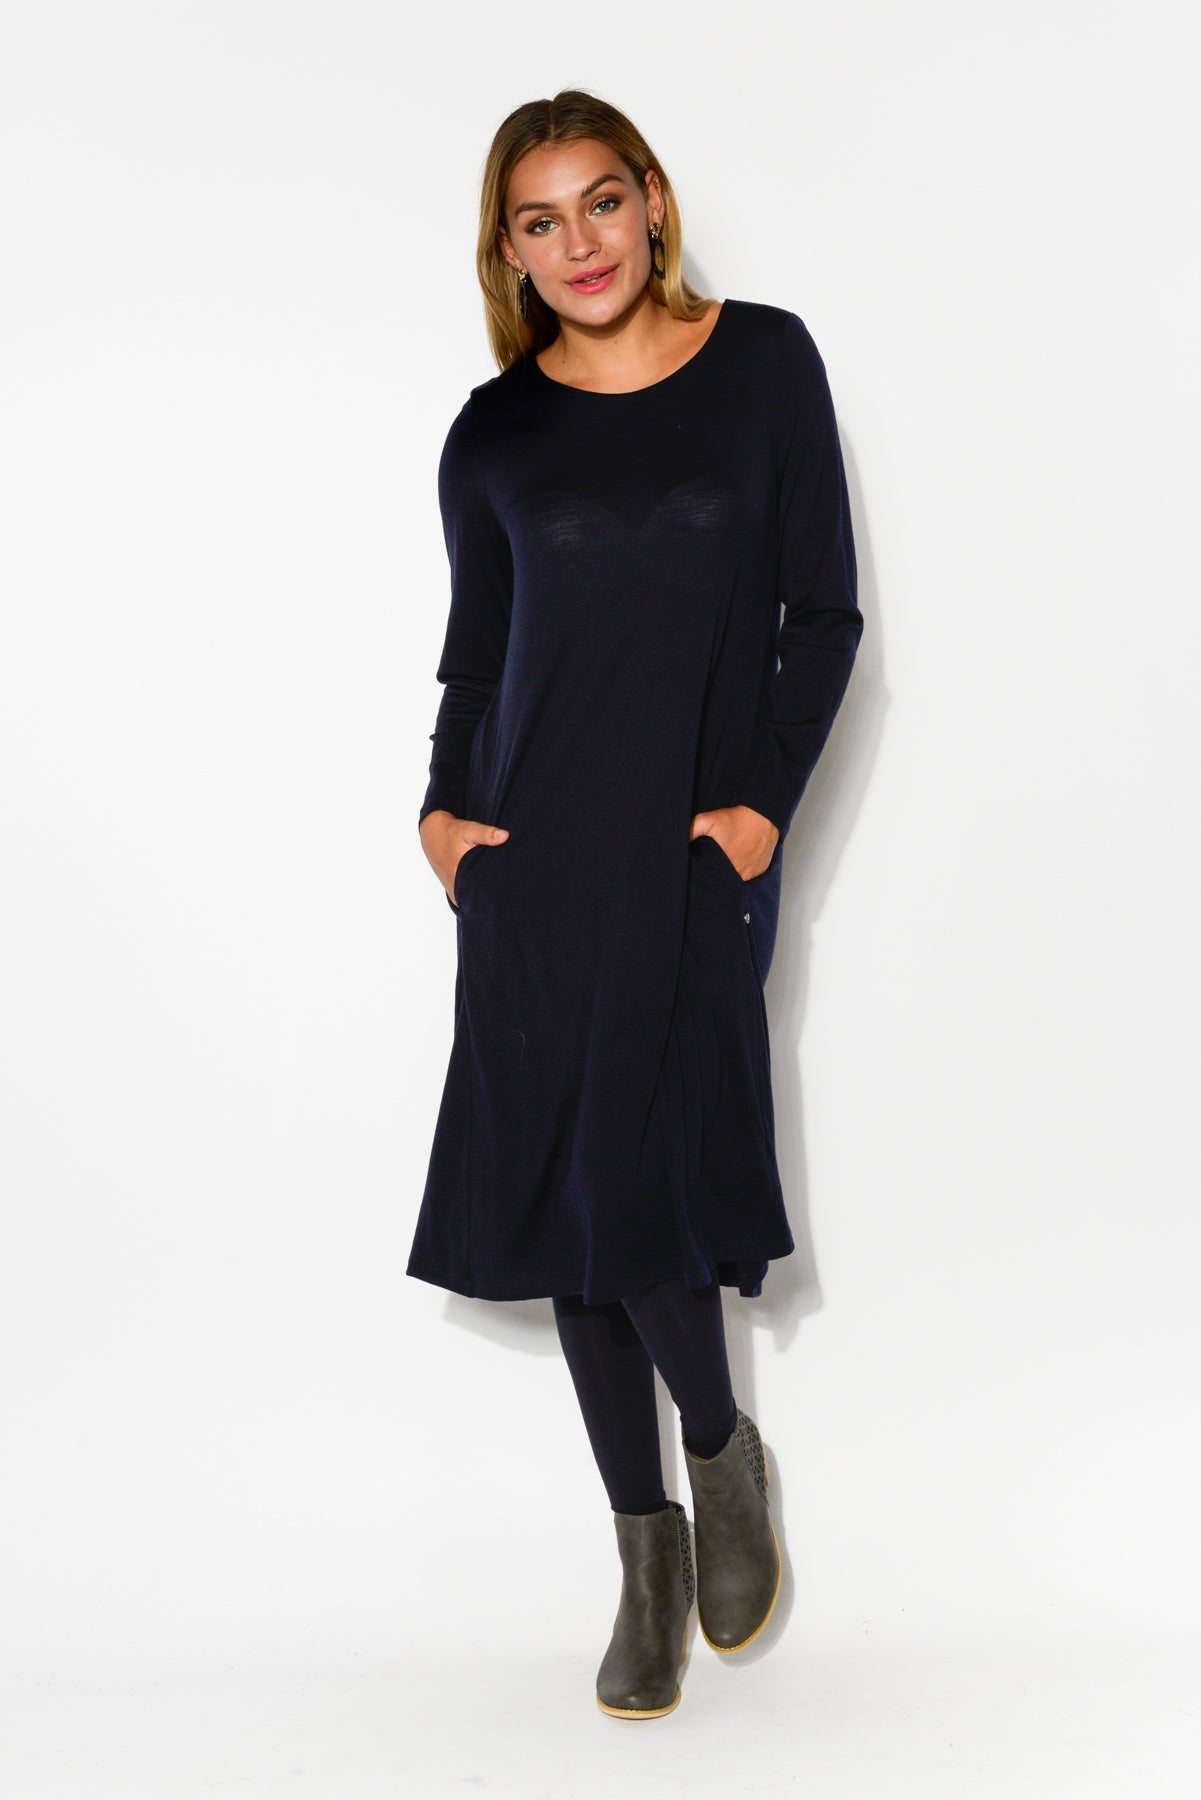 Vanity Navy Merino Wool Swing Dress - Blue Bungalow